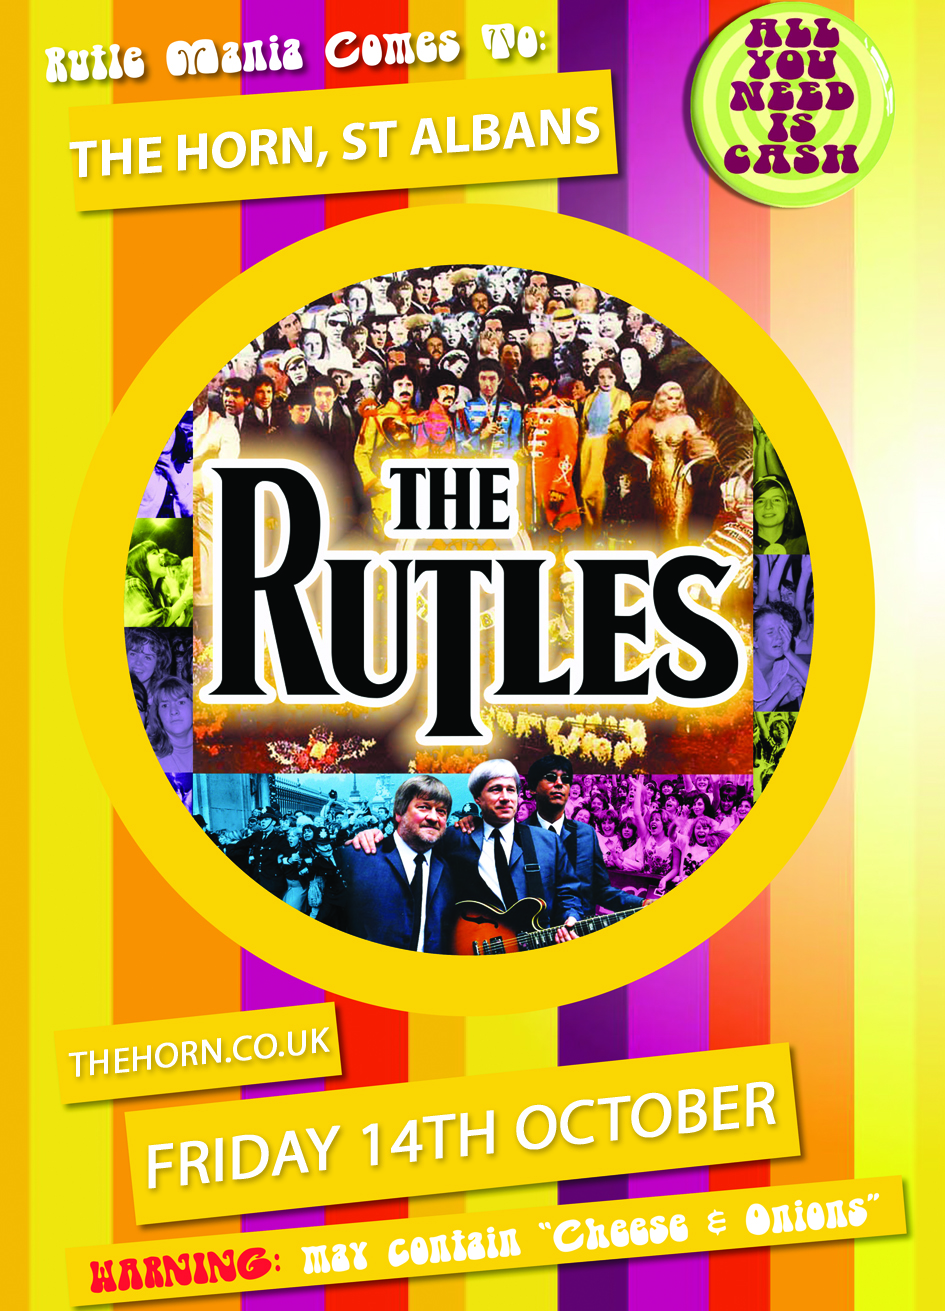 """THE RUTLES ( https://www.facebook.com/TheRutles ) It all began 40 years ago when Eric Idle (Monty Python) persuaded Neil Innes (Bonzo Dog Doo Dah Band) to join him in a TV comedy series for BBC 2 called Rutland Weekend Television. The concept was satirical - a spoof low-budget TV station, (the smallest in Britain) that could only churn out ludicrously cheap """"programmes"""".  Idle would write sketches and Innes would put pictures to songs…  Innes suggested to Idle that they could do a send-up of A Hard Day's Night, the Beatles first movie. """"It's in Black and White, it's speeded up, and we could wear wigs and tight trousers and run around a field somewhere…""""  Idle agreed. """"I've got a sketch about a man making a documentary who's so boring, the camera runs away from him…""""  And so the name """"Rutles"""" was born. But no one could have foreseen what was around the corner. A year or so later, such was the enormous pressure on the Beatles to get back together again, the one-off Rutland Weekend clip was shown in the USA – as part of a """"running gag"""" - on NBC's hugely popular """"Saturday Night Live"""".  It was a sensation. Thousands of people wrote in. Mailbags were bulging - and so were the trousers. Everyone got the joke. Lorne Michaels, the producer, believed the entire Beatles story could now be re-told – as """"The Rutles"""". The people upstairs at NBC agreed and gave him the money.  Eric Idle quickly came up with the title: """"All You Need Is Cash – the story of the Pre-Fab Four"""". Bill Murray, John Belushi and Dan Ackroyd soon got involved – as did George Harrison, who brought in Mick Jagger and Paul Simon.  The world's first """"Rockumentary"""" – or """"Mockumentary"""" - was broadcast in the discontented summer of 1978. To this day it proudly holds the record for the lowest viewing figures - ever - on American Prime Time Television."""